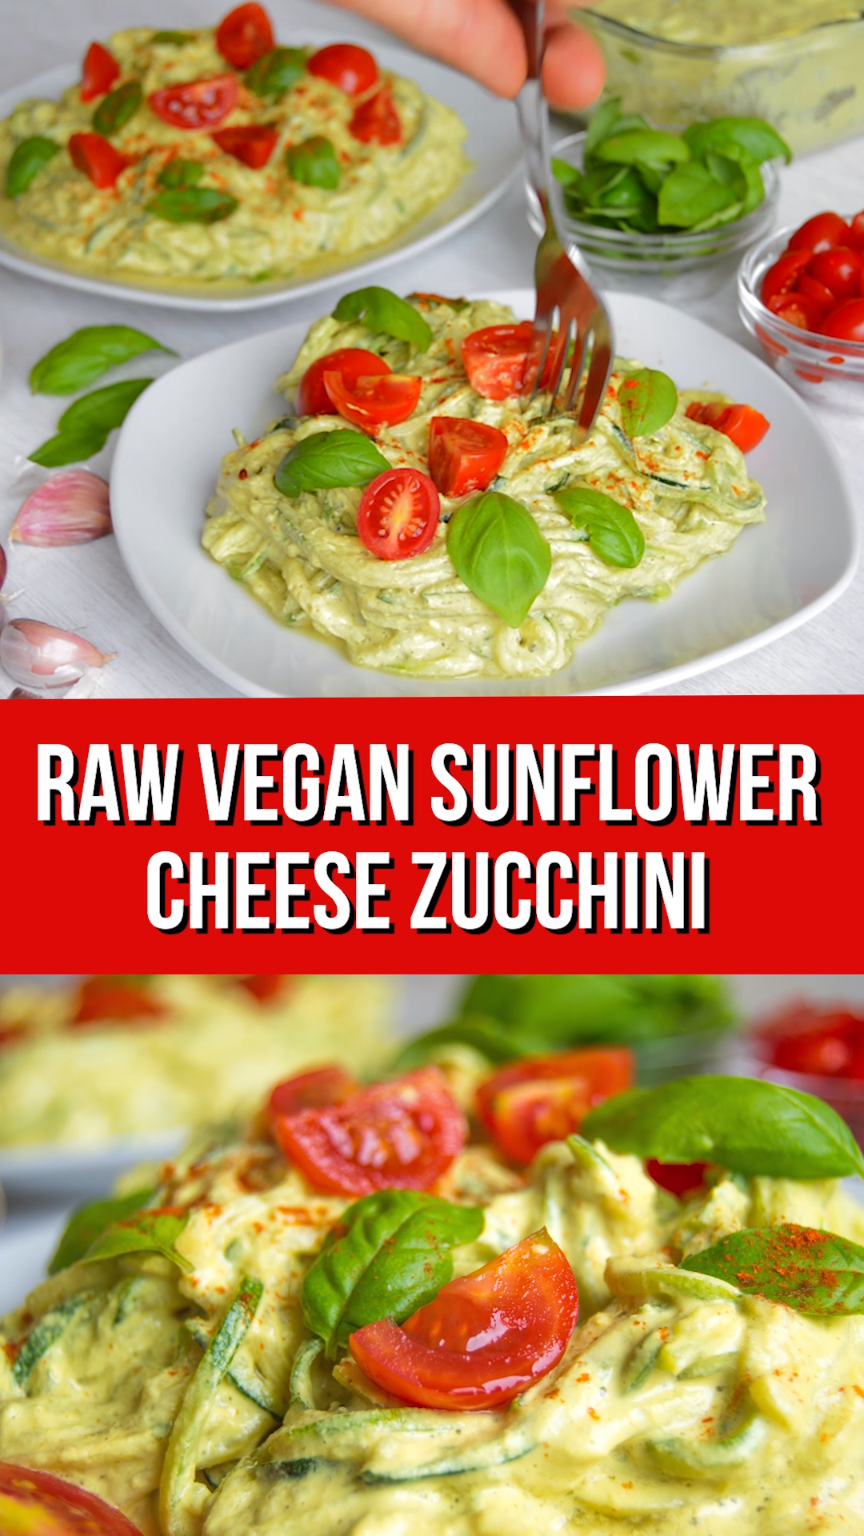 Courgetti Sunflower Seed Cheese,  Courgetti Sunflower Seed Cheese,